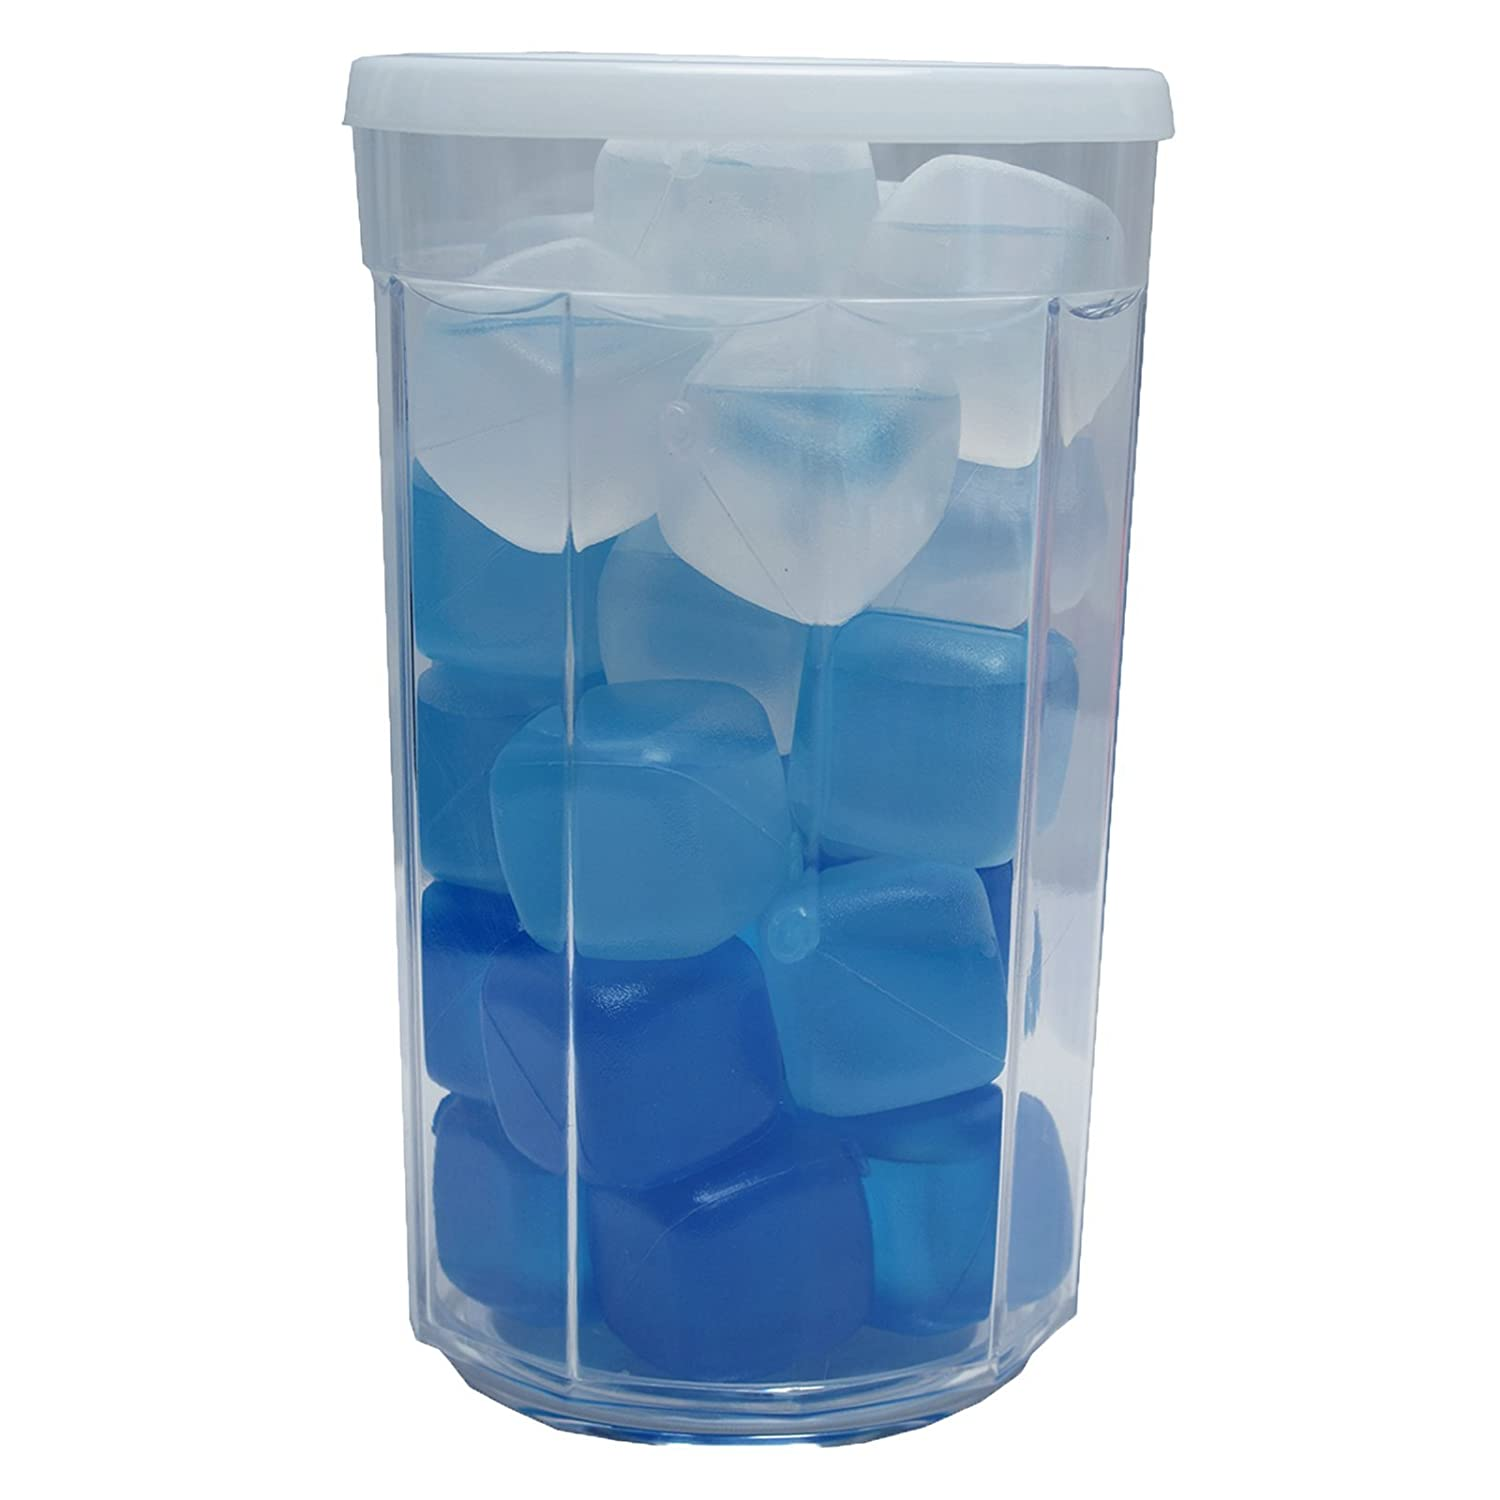 Amazoncom Icy Cools Cool Blues Reusable Ice Cubes For Your Drink